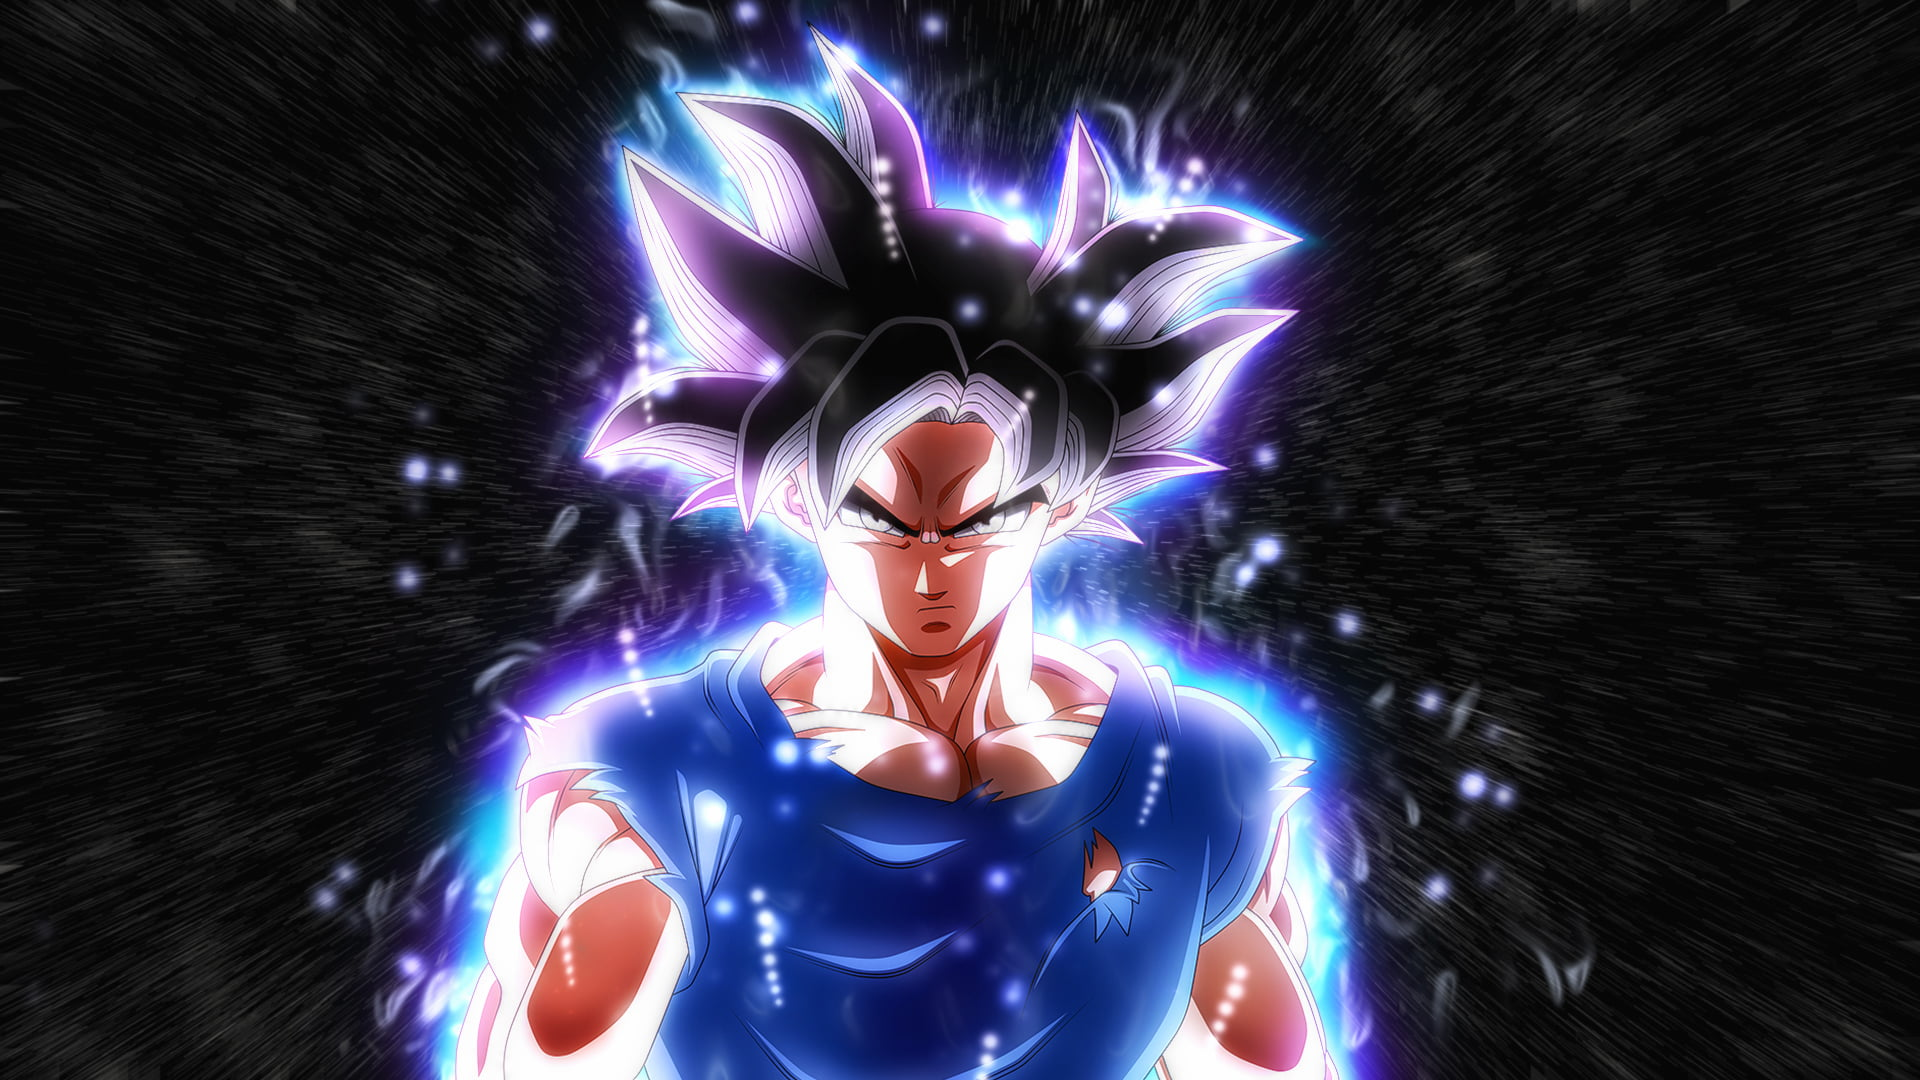 Goku Live Wallpaper Iphone 7 - Wall GiftWatches CO